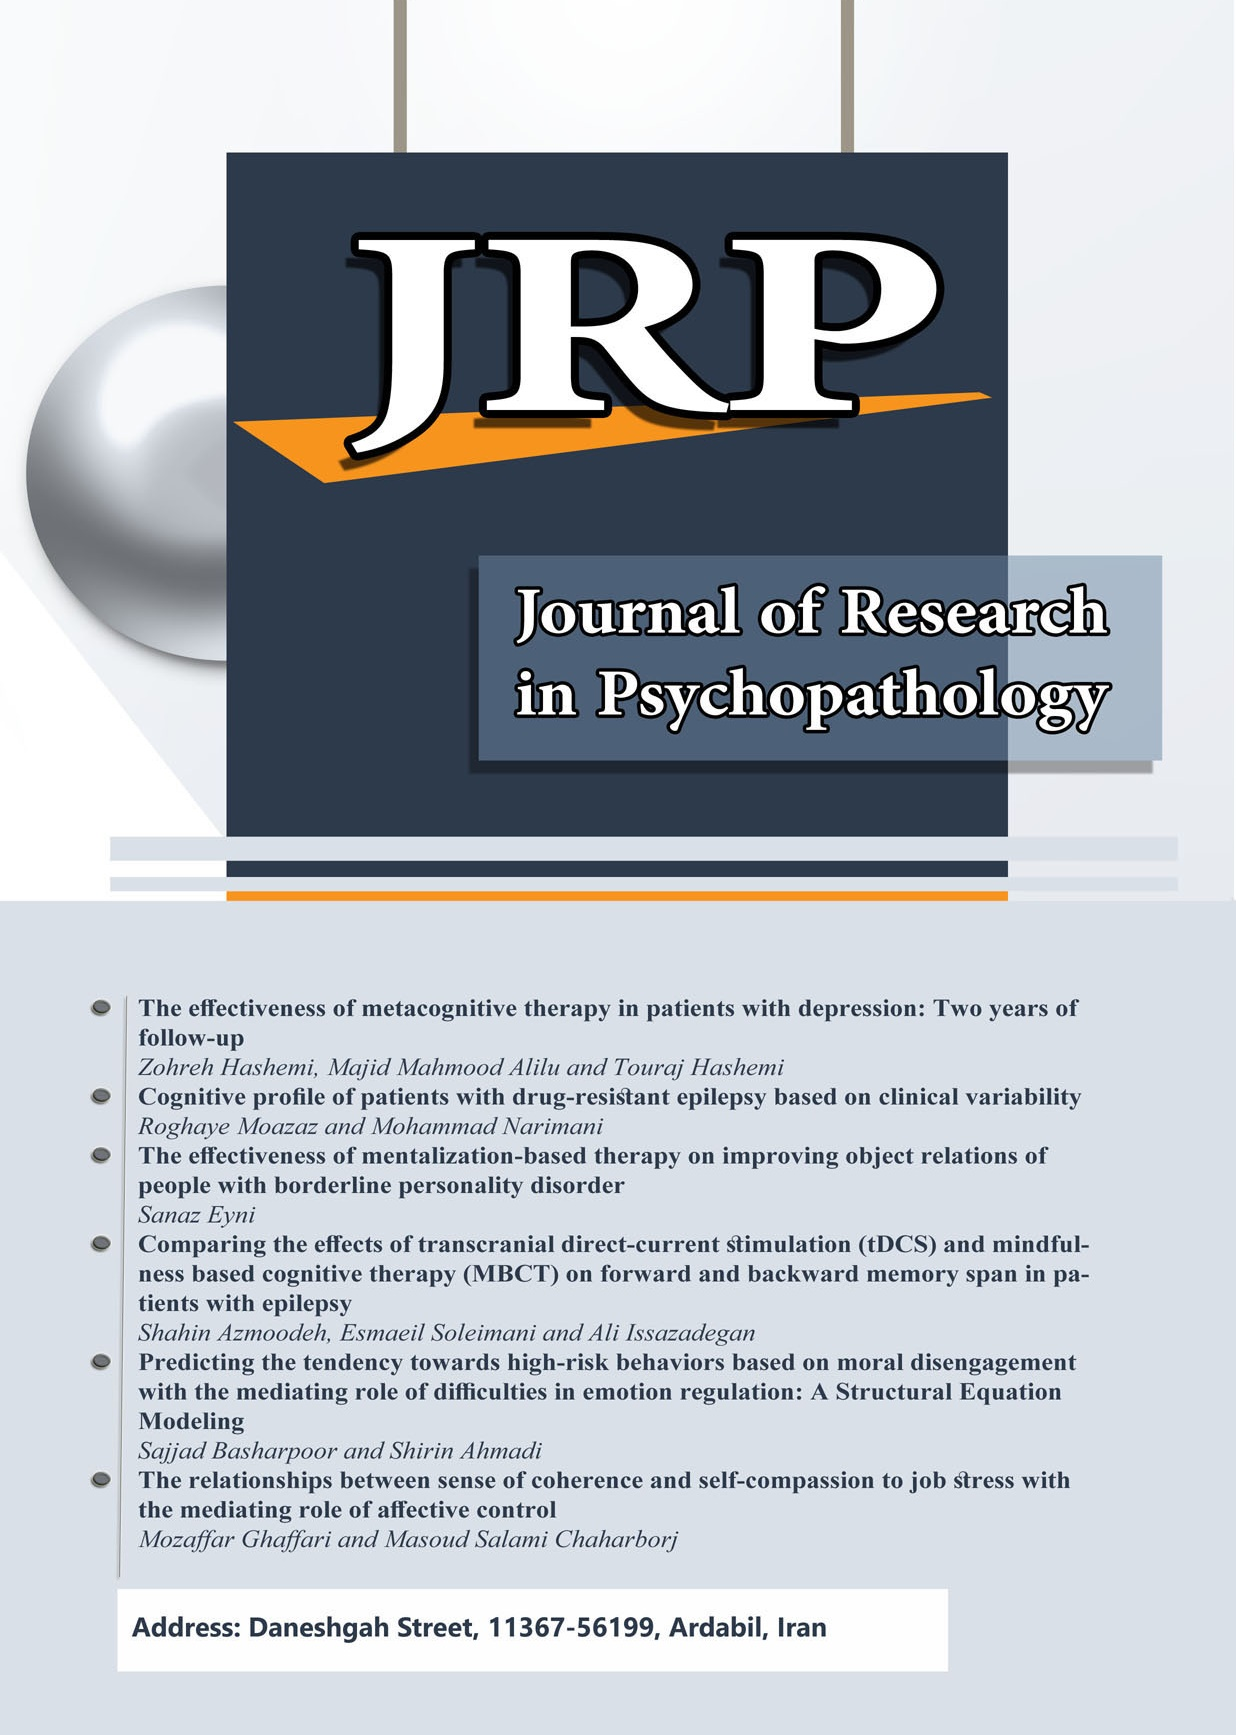 Journal of Research in Psychopathology